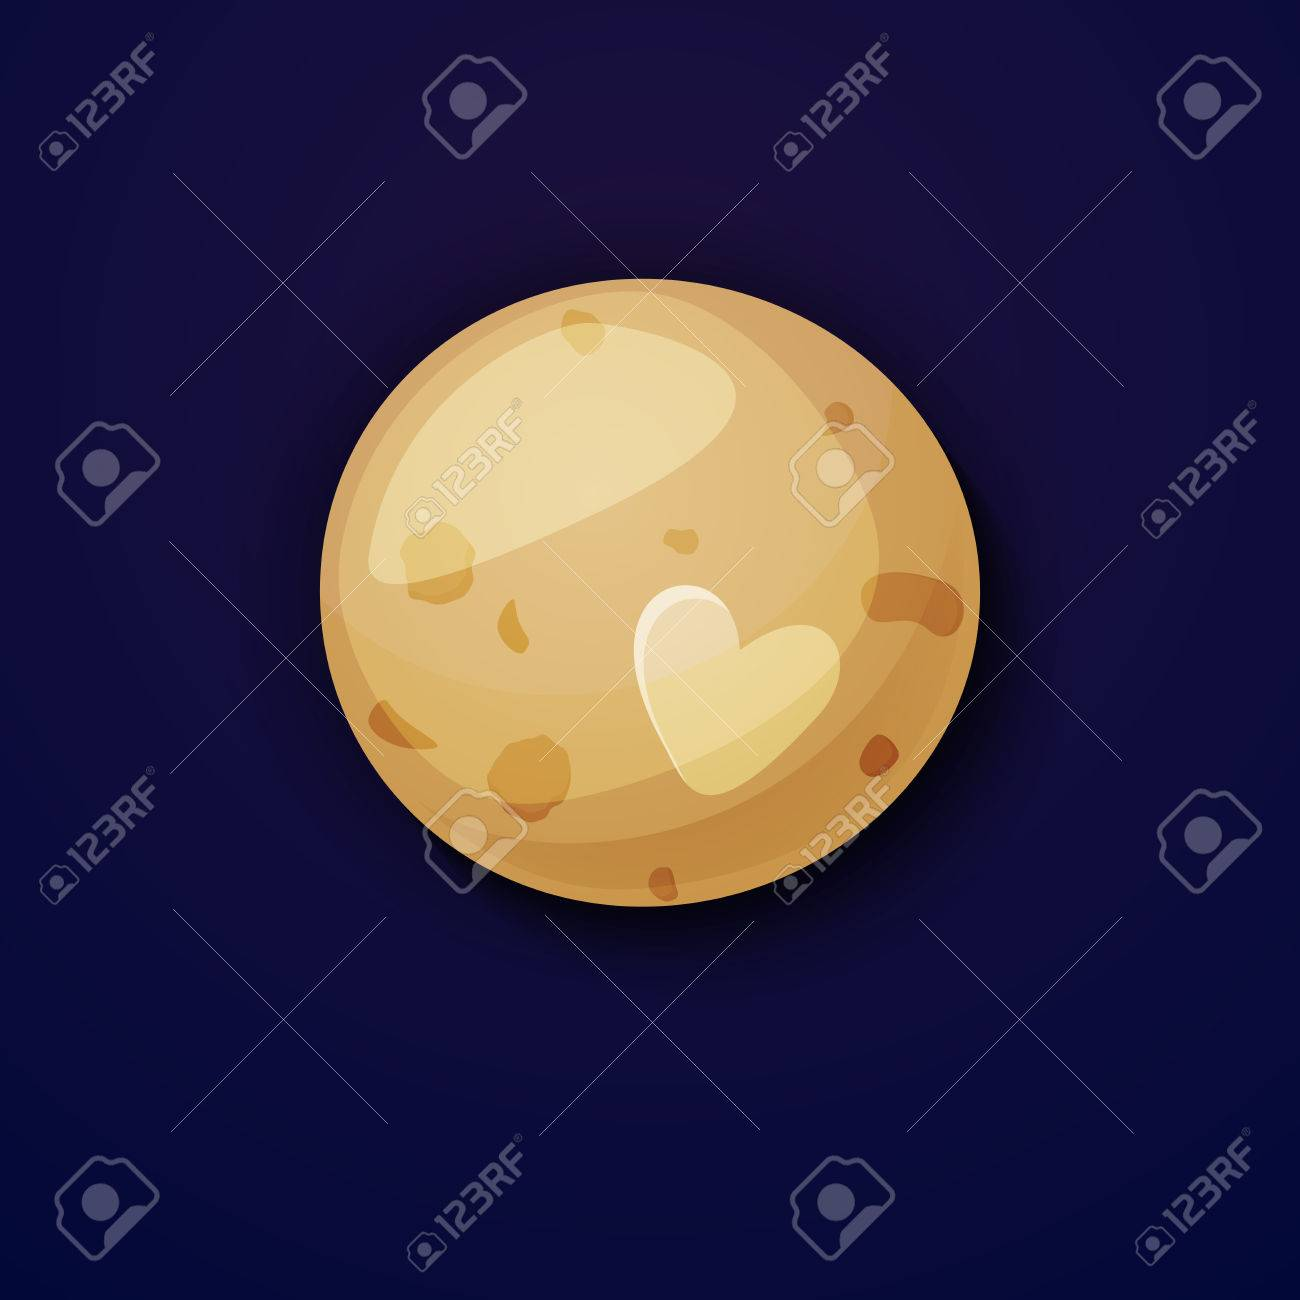 Pluto Planet Space Objects In Cartoon Style On Space Background 1300x1300